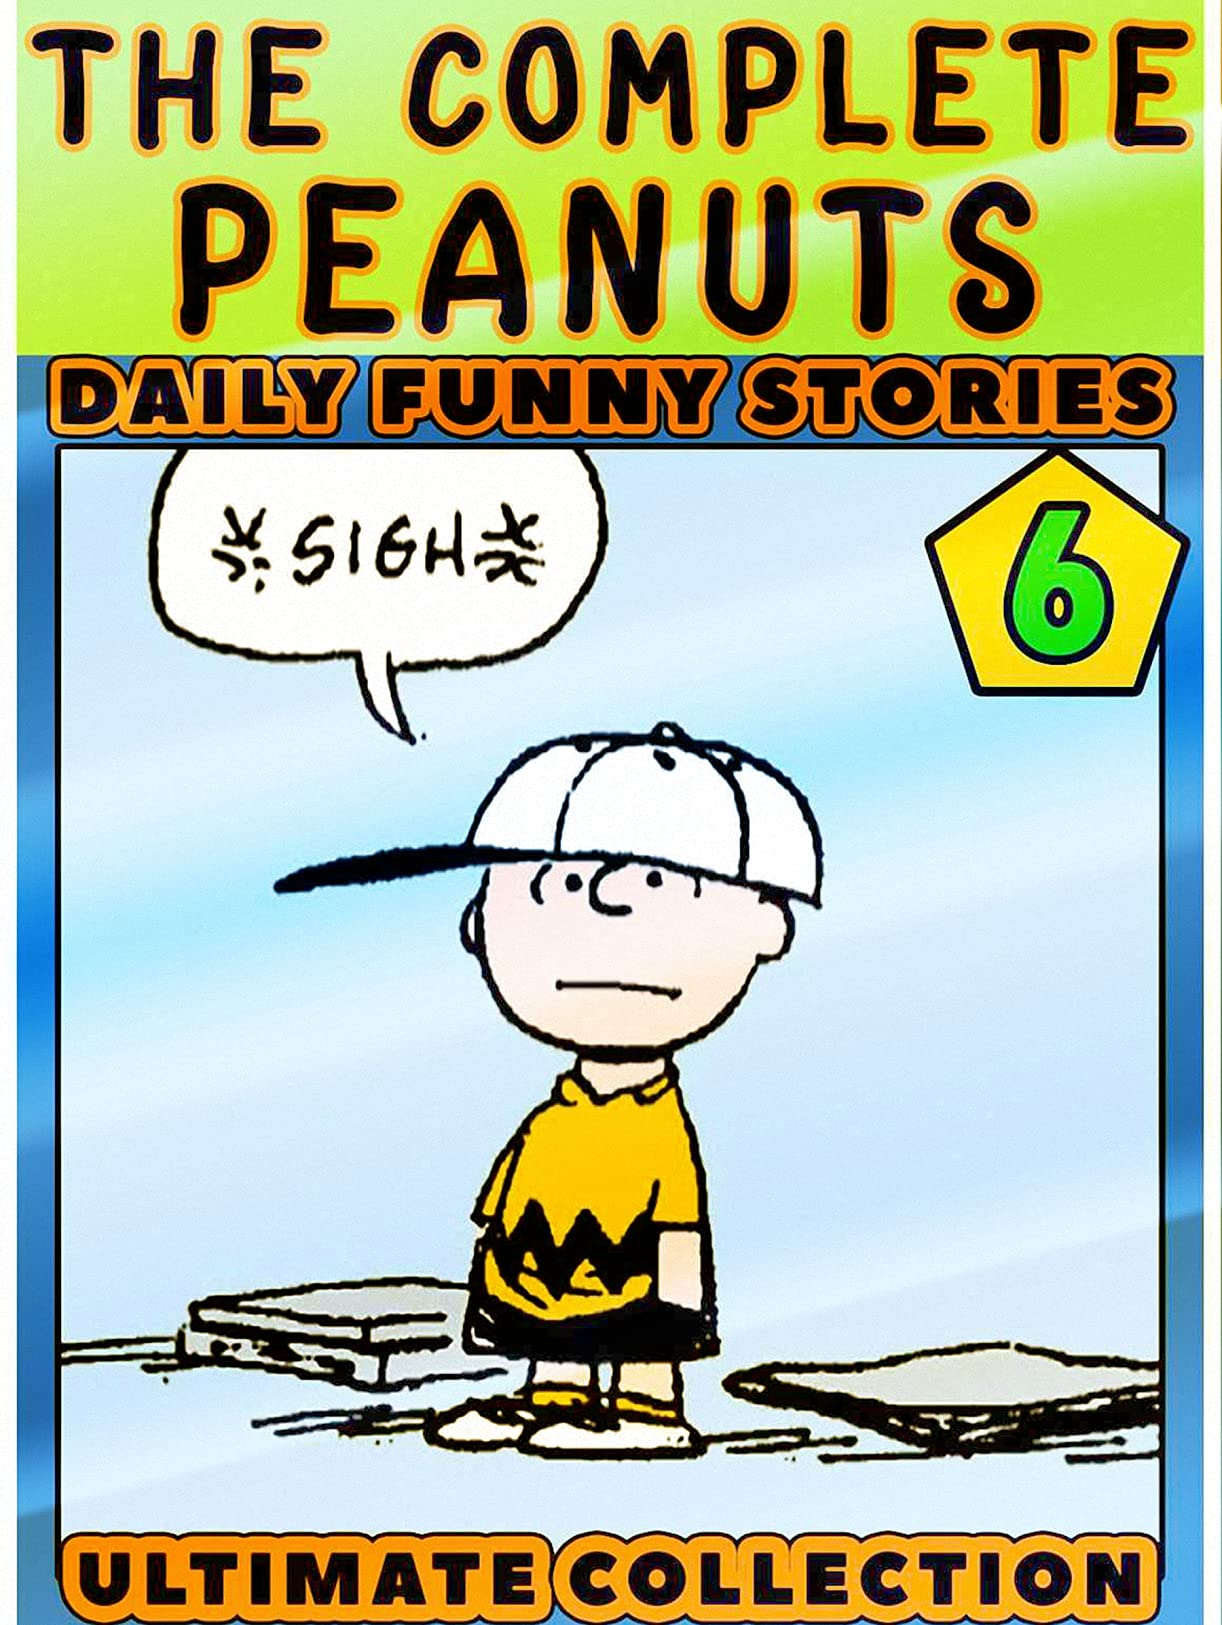 Peanut-Complete-Stories: Book 6 - The Graphic Novel Funny Complete Sno-opy Great Pea-nuts Comics For Girls Boys Kids And Children